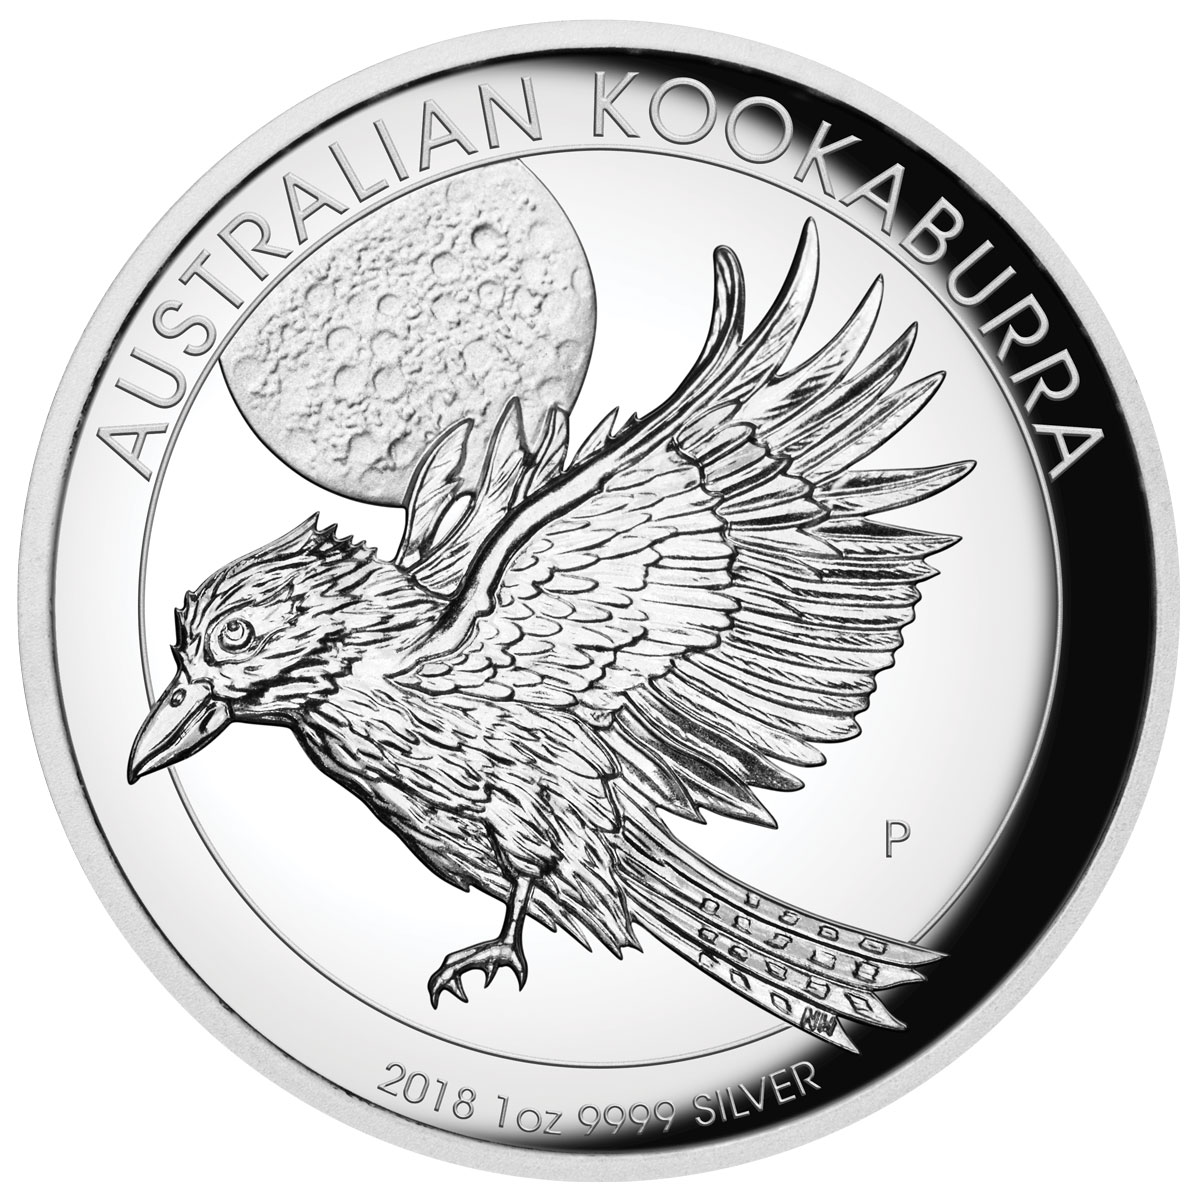 2018 Australia 1 oz High Relief Silver Kookaburra Proof $1 Coin GEM Proof OGP